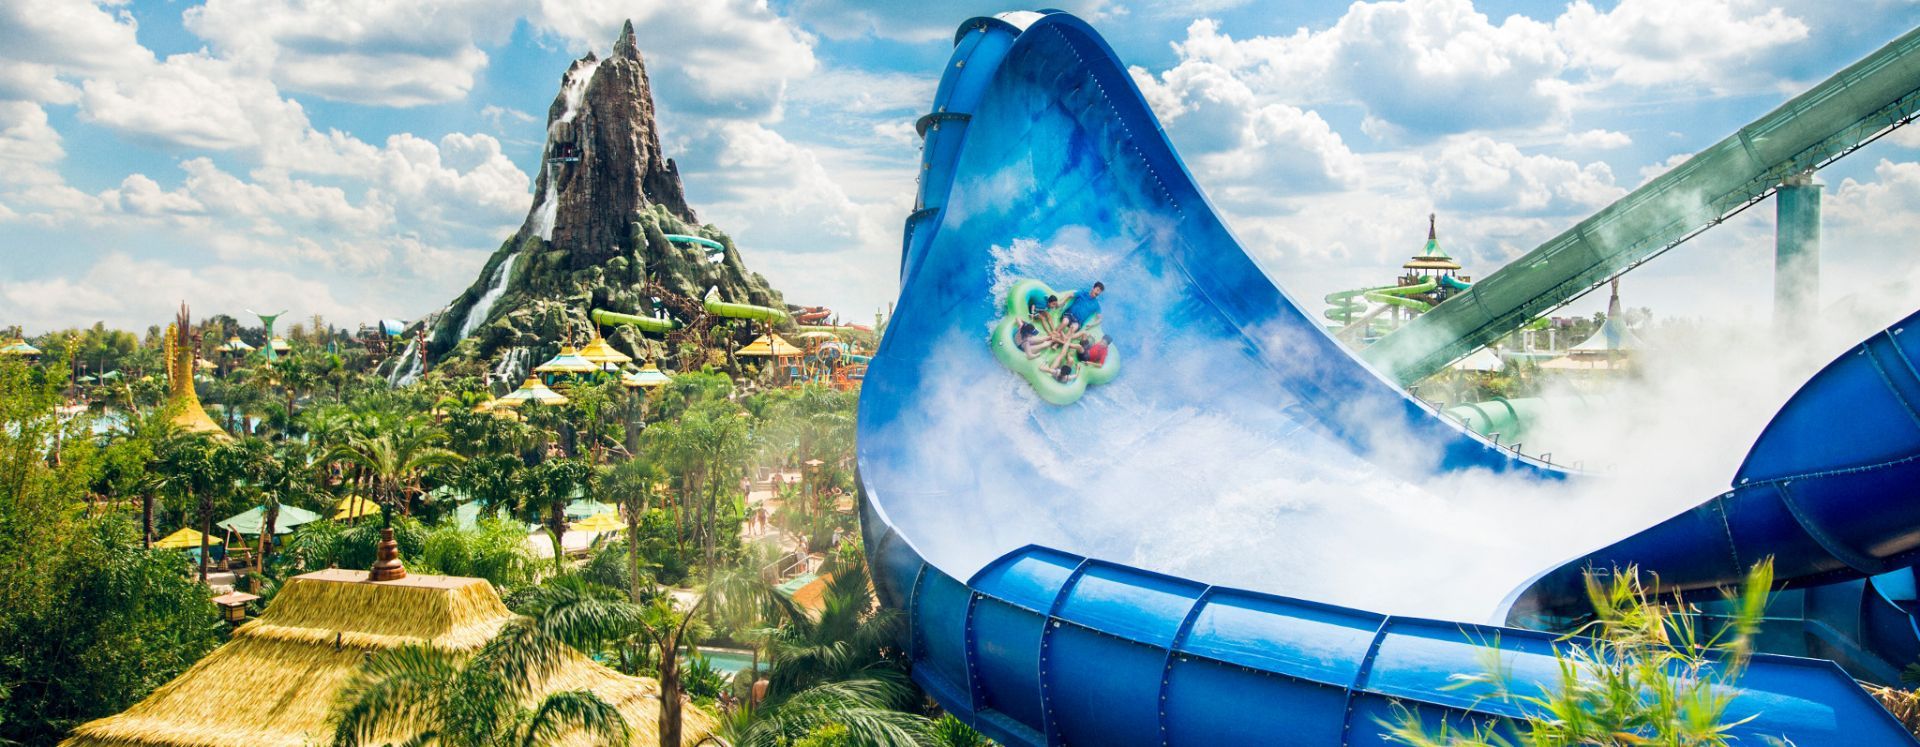 Universal Closes Water Park After Electric Shocks